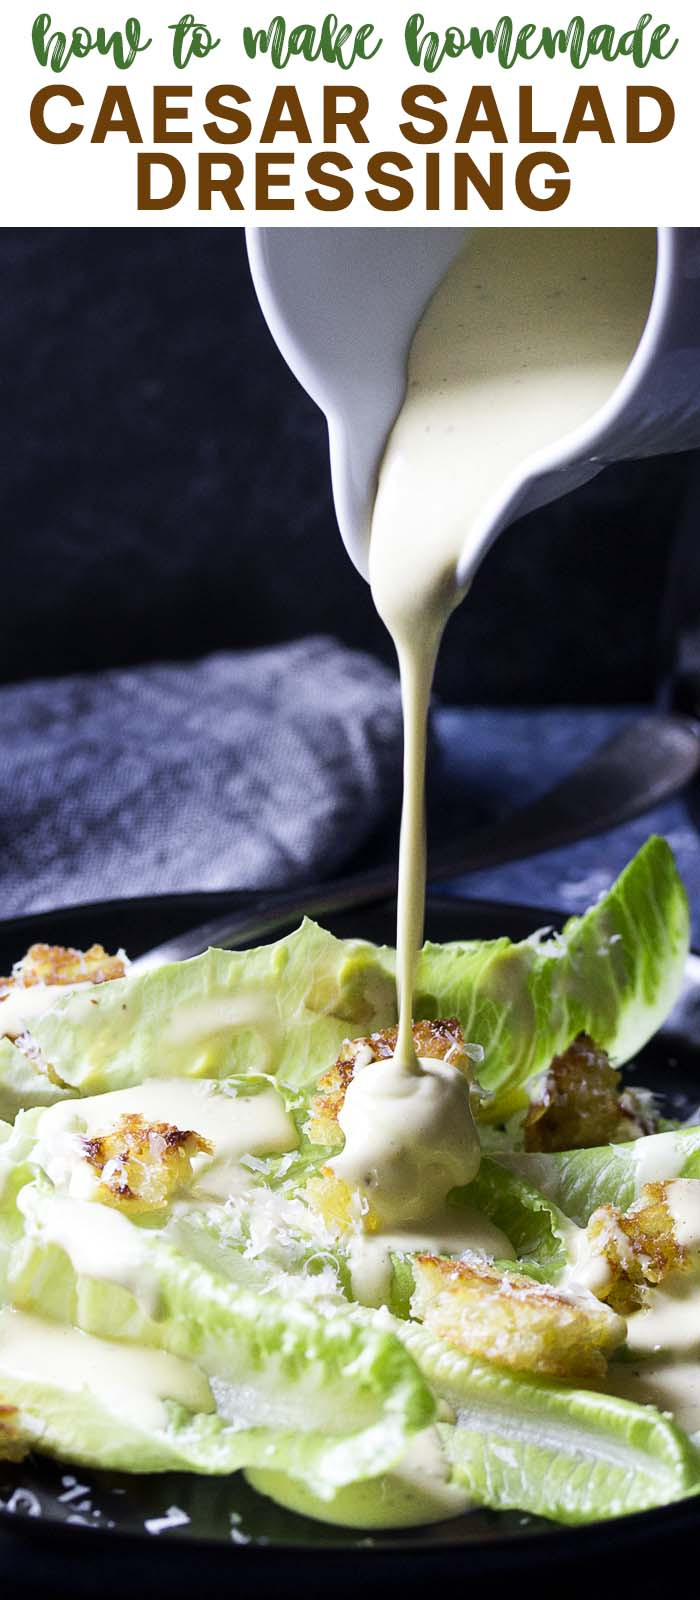 Dressing pouring down onto a plate of salad with text overlay - Caesar Salad Dressing.